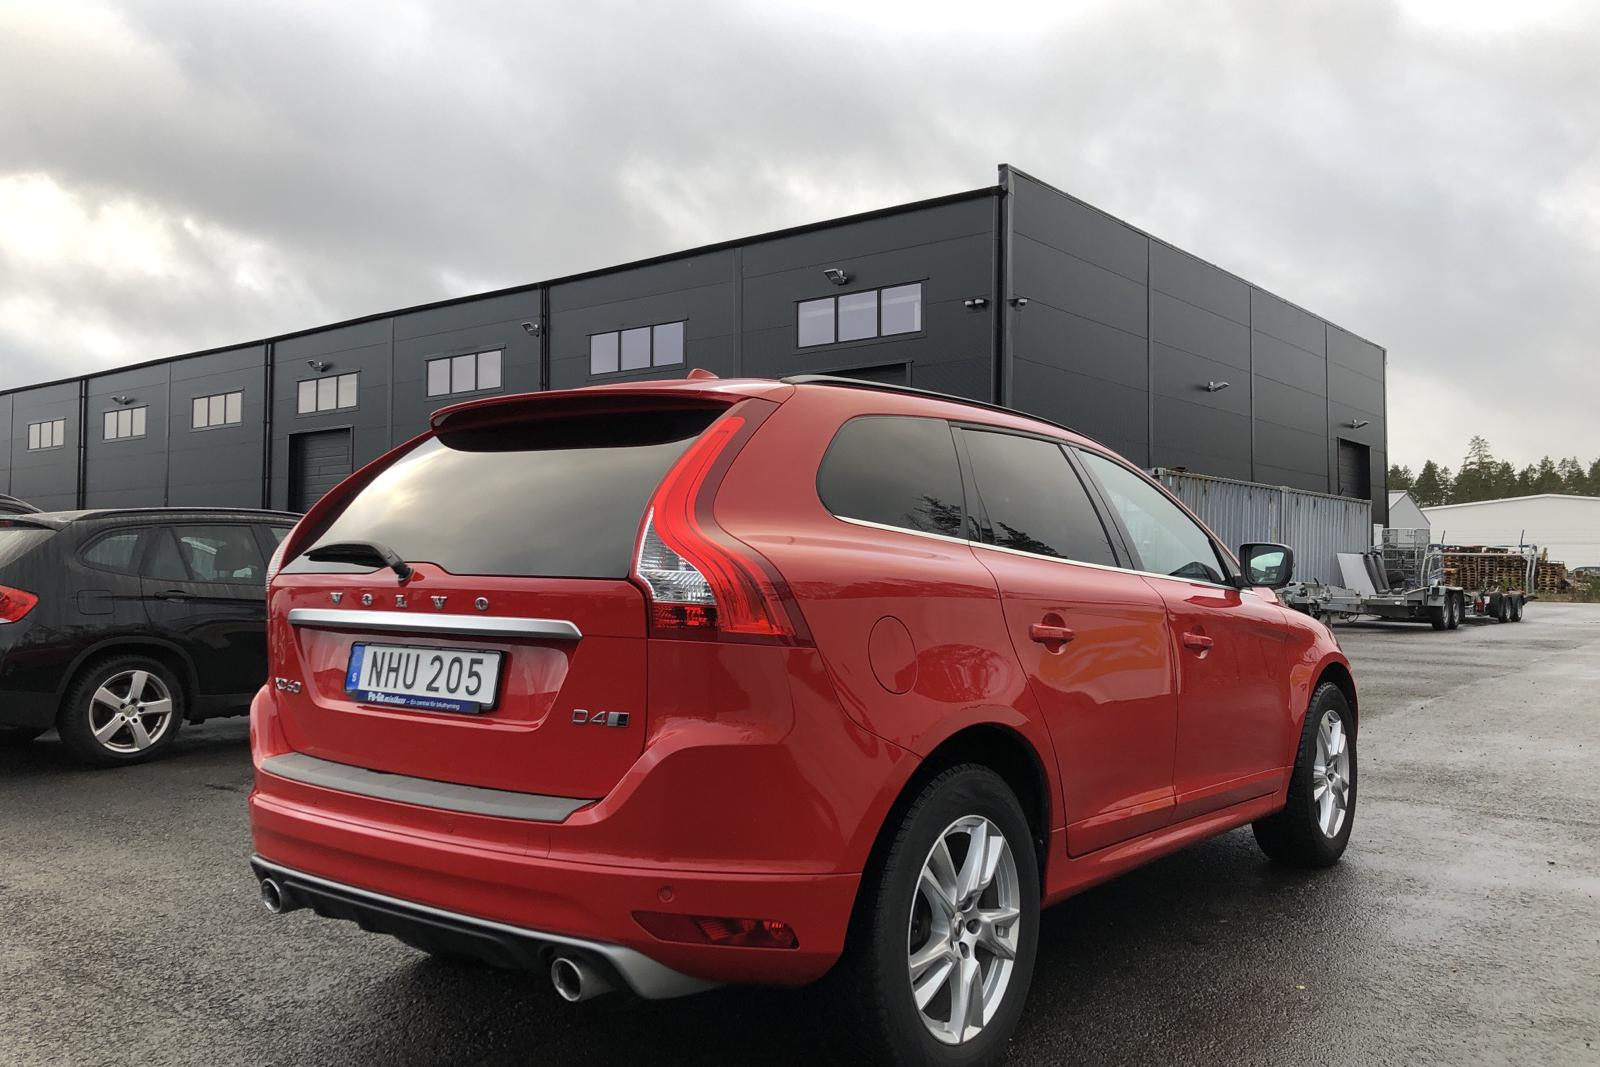 Volvo XC60 D4 AWD (190hk) - 107 680 km - Automatic - red - 2017